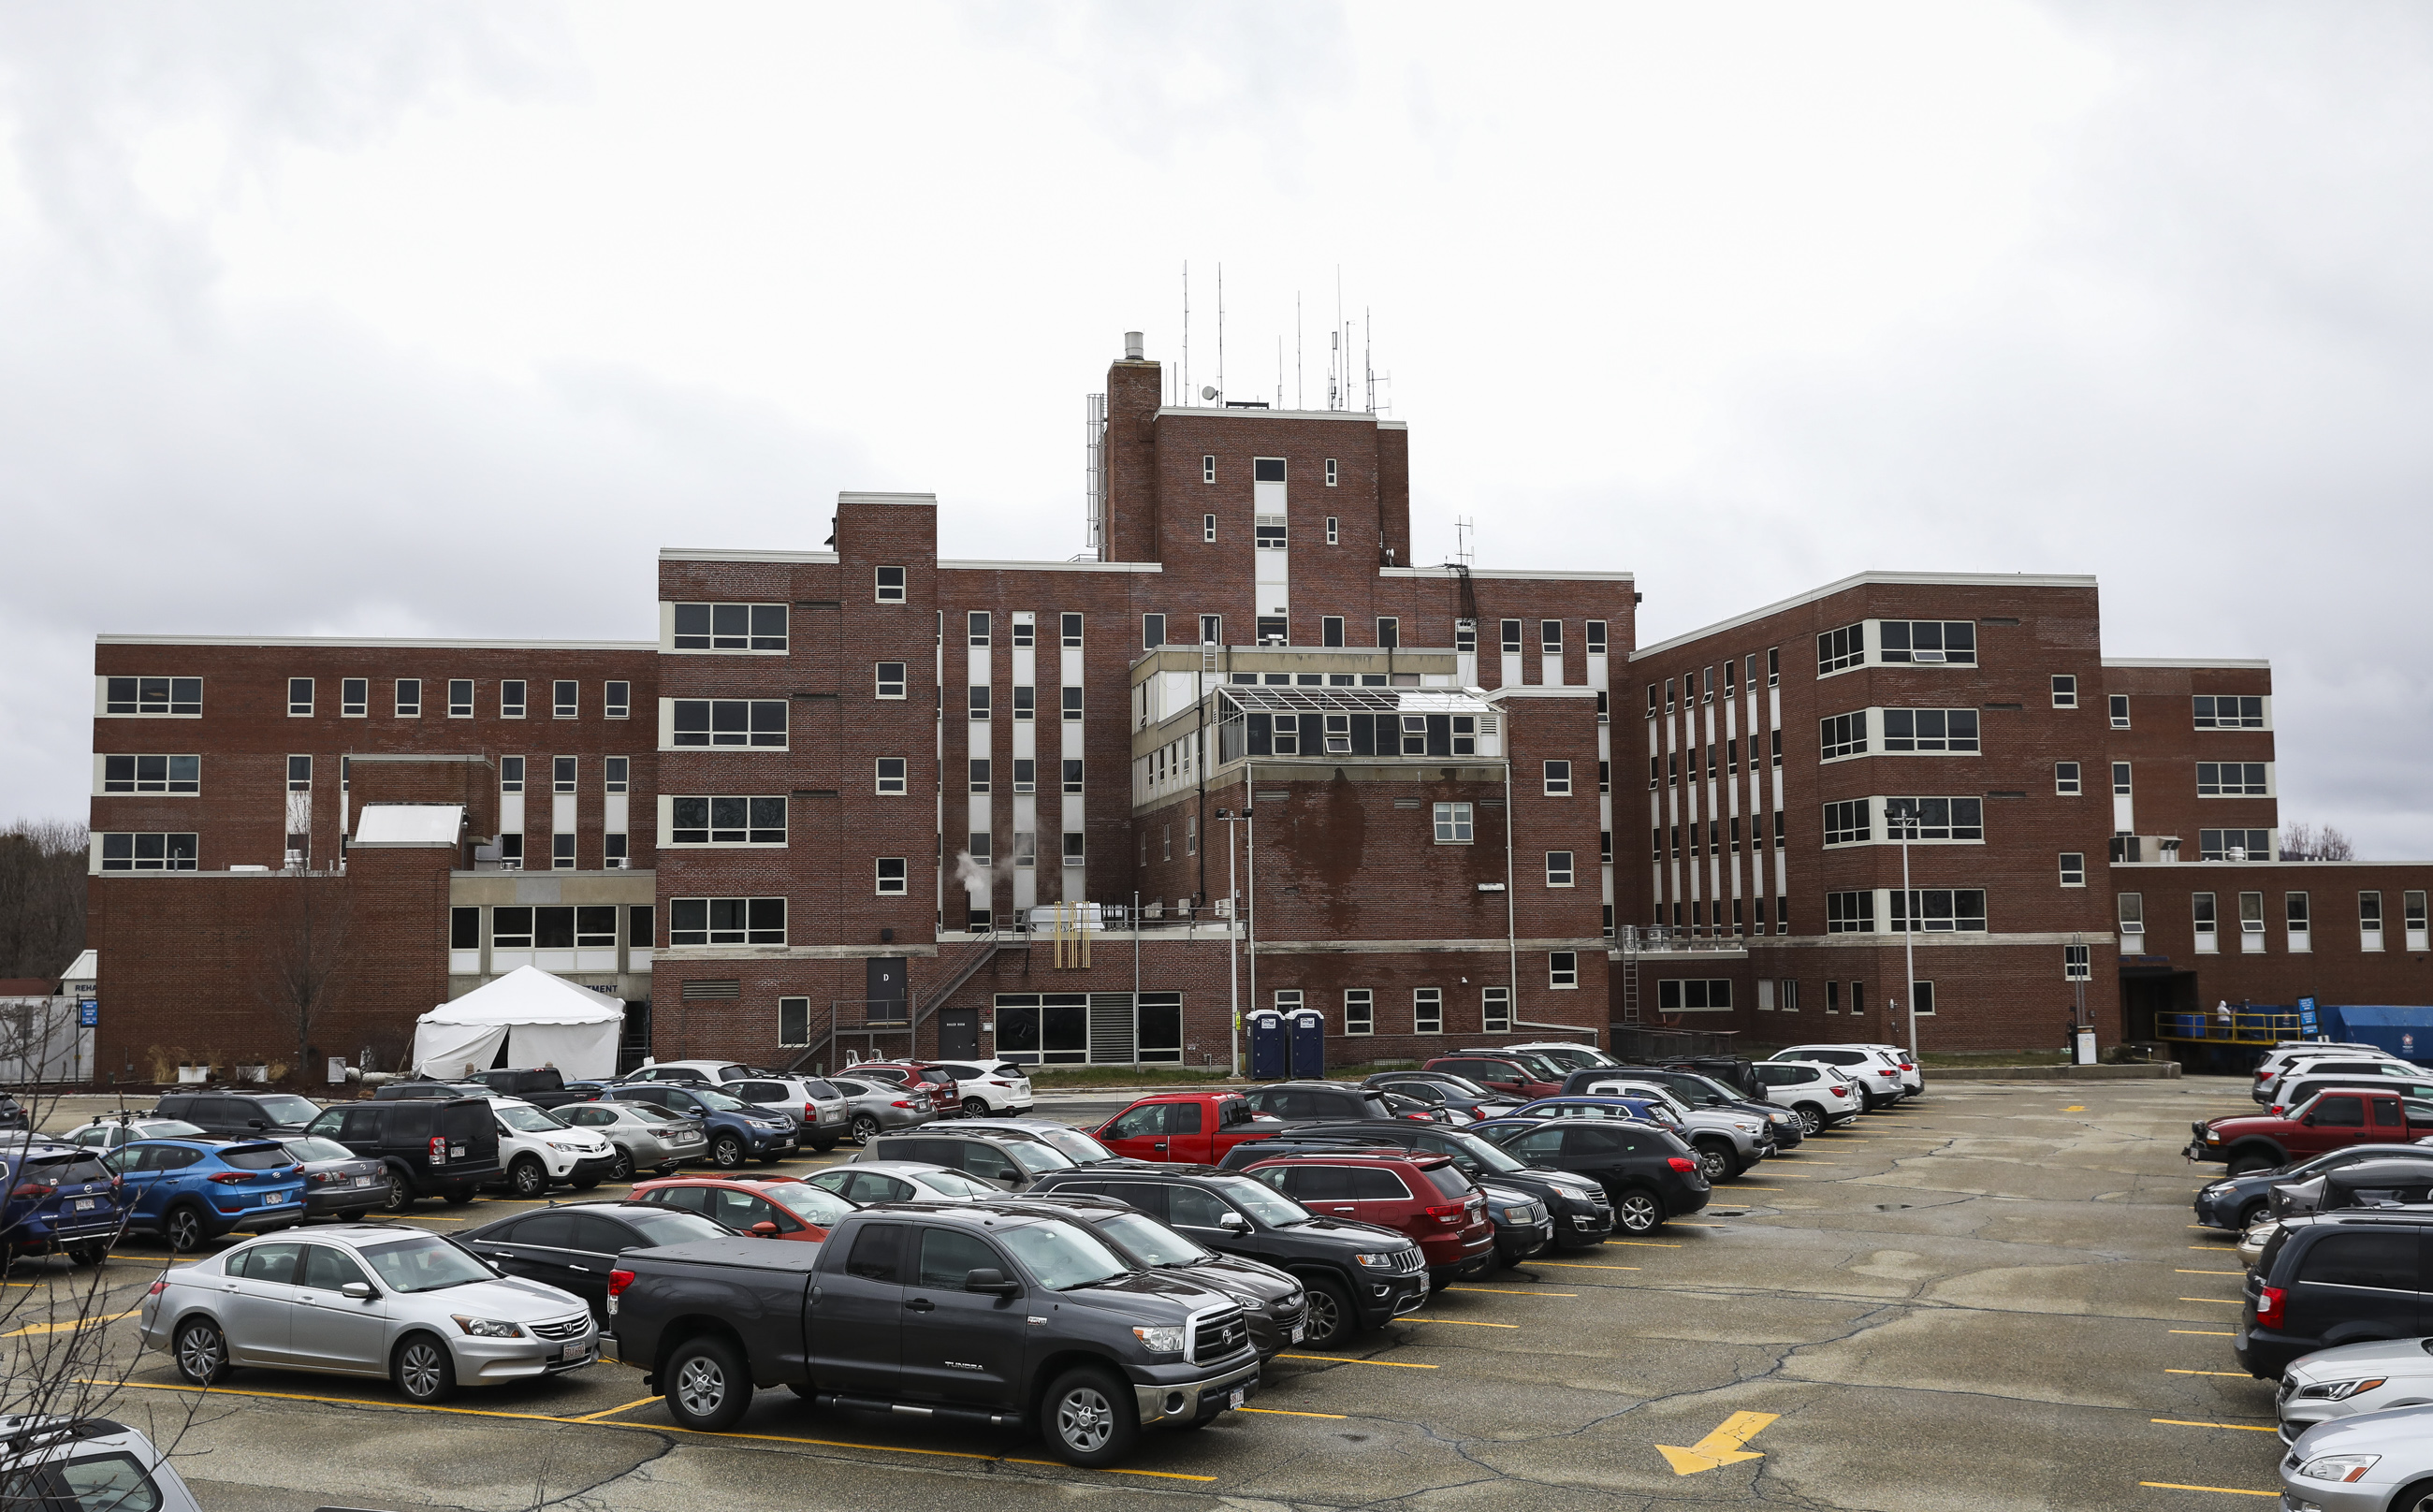 Families to Testify On Holyoke Soldiers' Home Outbreak as Visitation Suspended